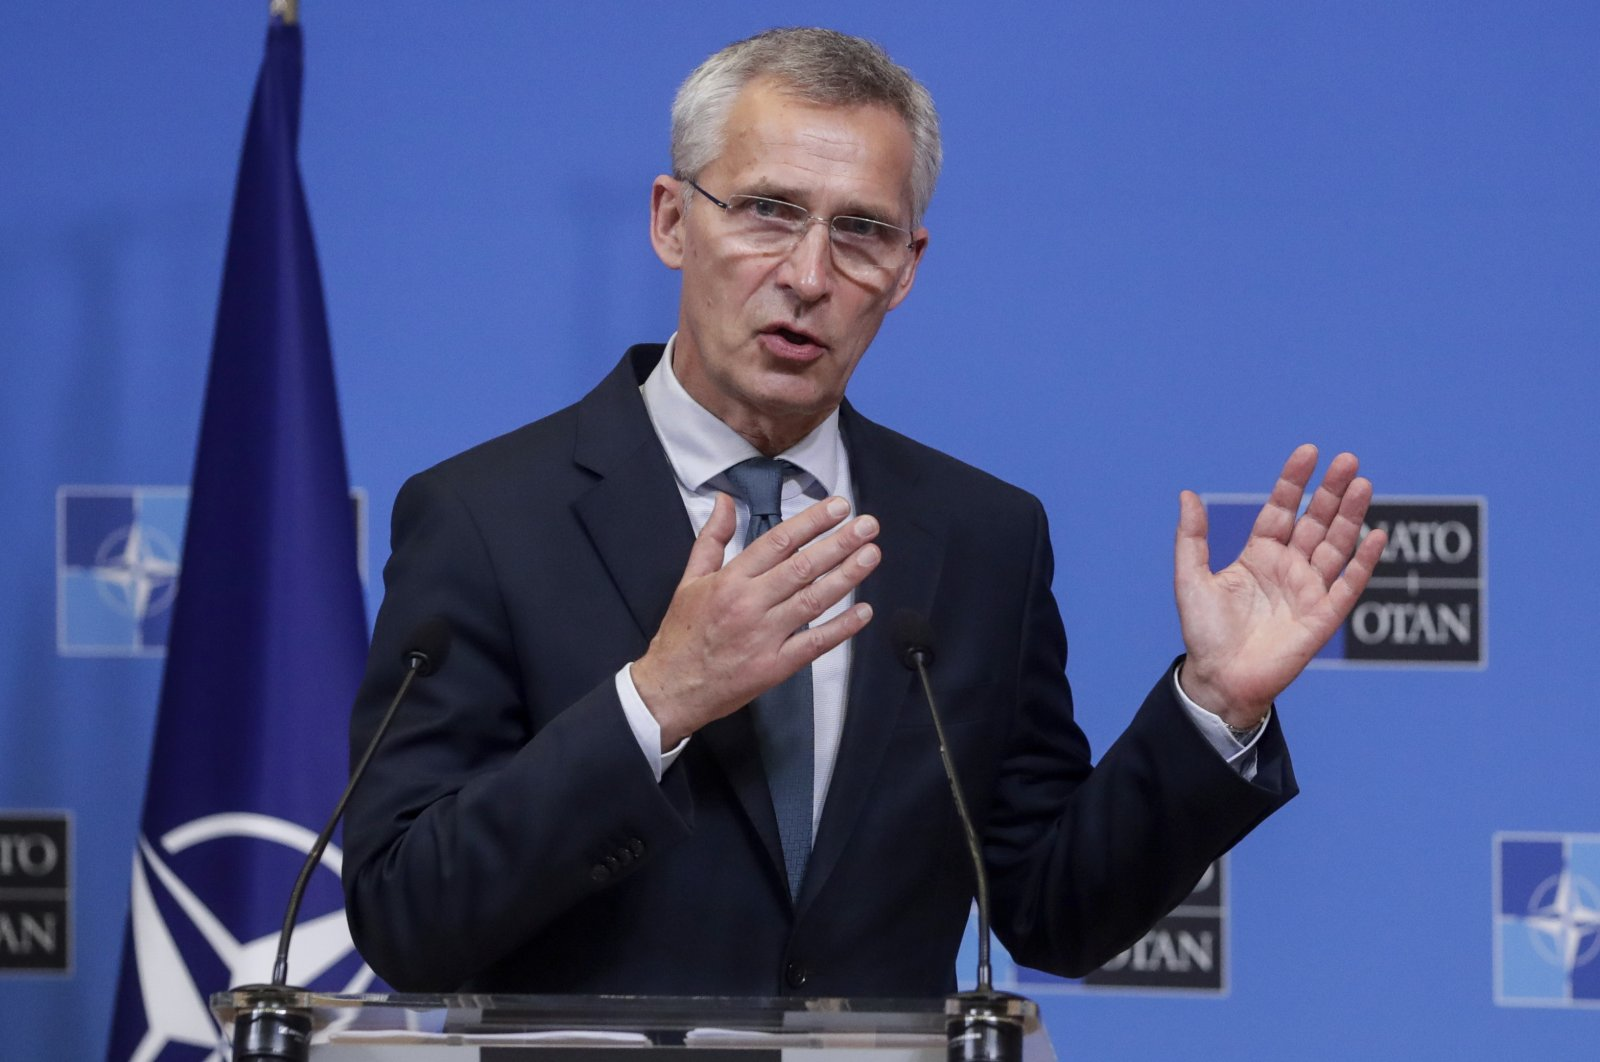 NATO Secretary-General Jens Stoltenberg speaks during a media conference after a meeting with Lithuanian Prime Minister Ingrida Simonyte at NATO headquarters in Brussels, Belgium, June 3, 2021. (AP Photo)